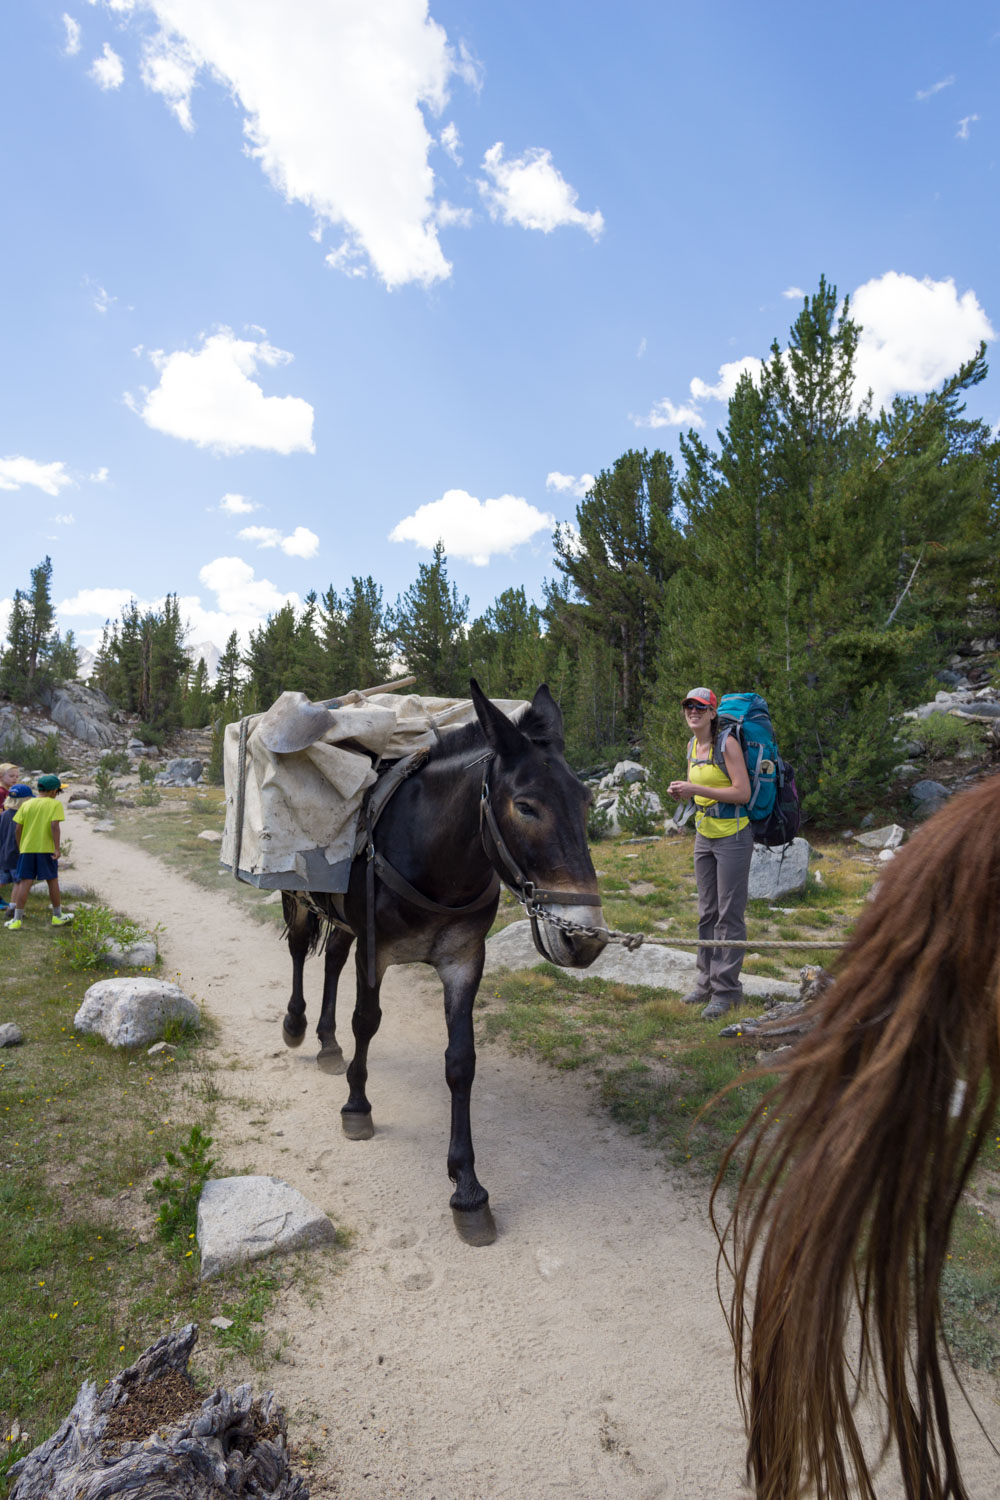 Pack mules on the earlier portions of the trail